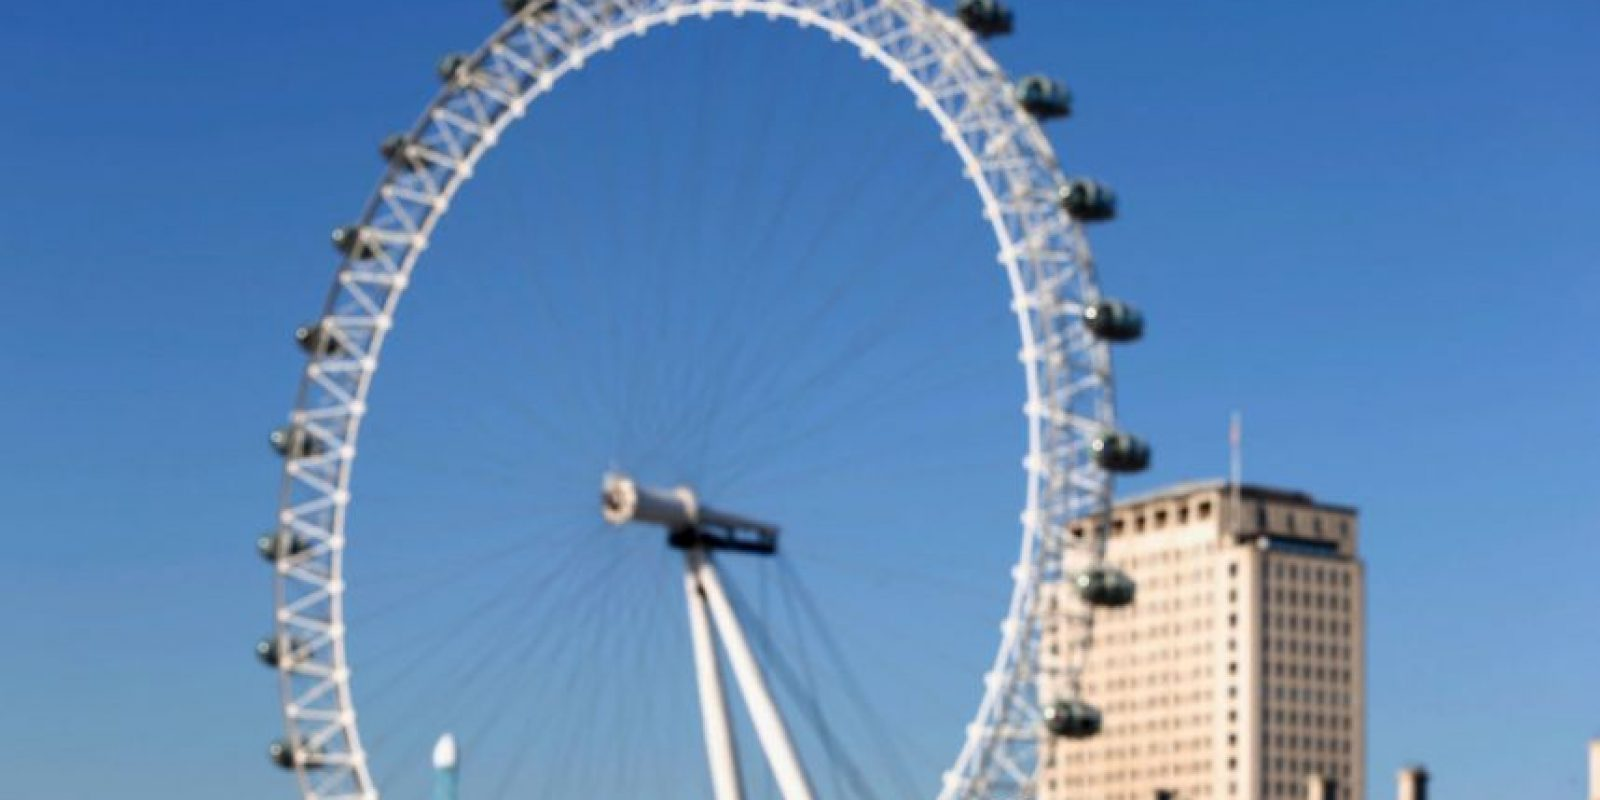 London Eye Foto: Getty Images